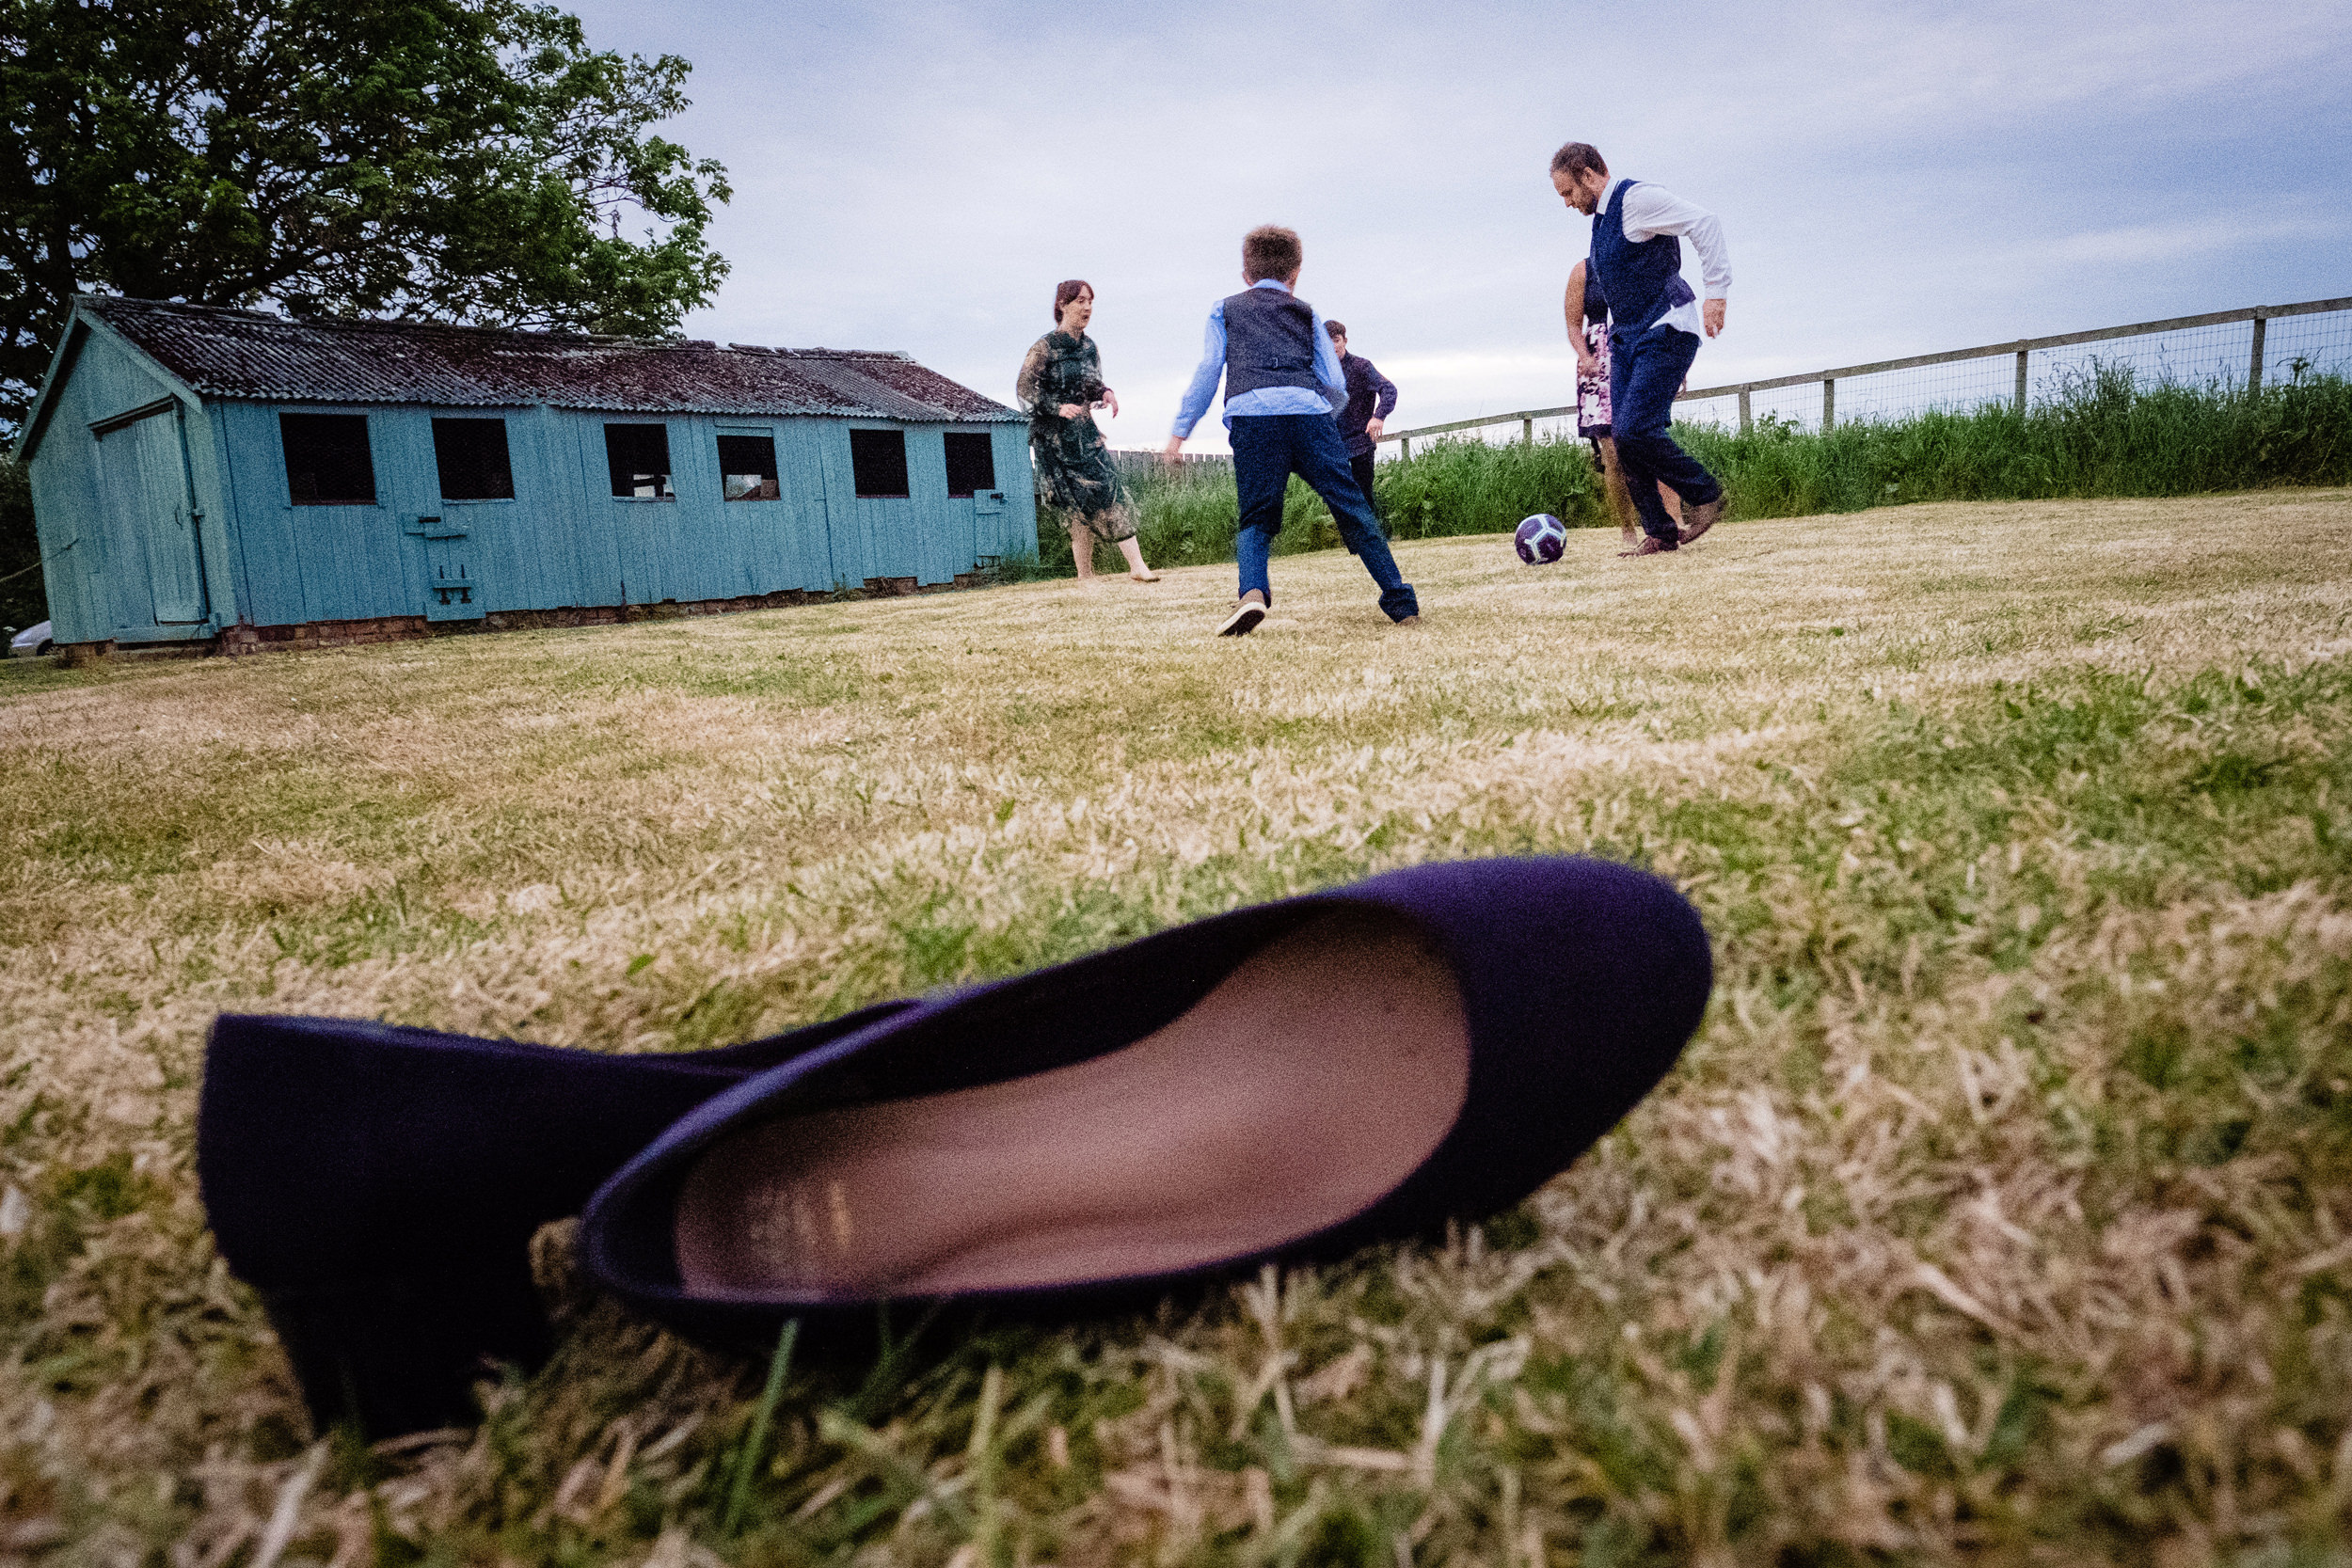 wedding guests playing football. wildwood and eden wedding photography by emma and rich.